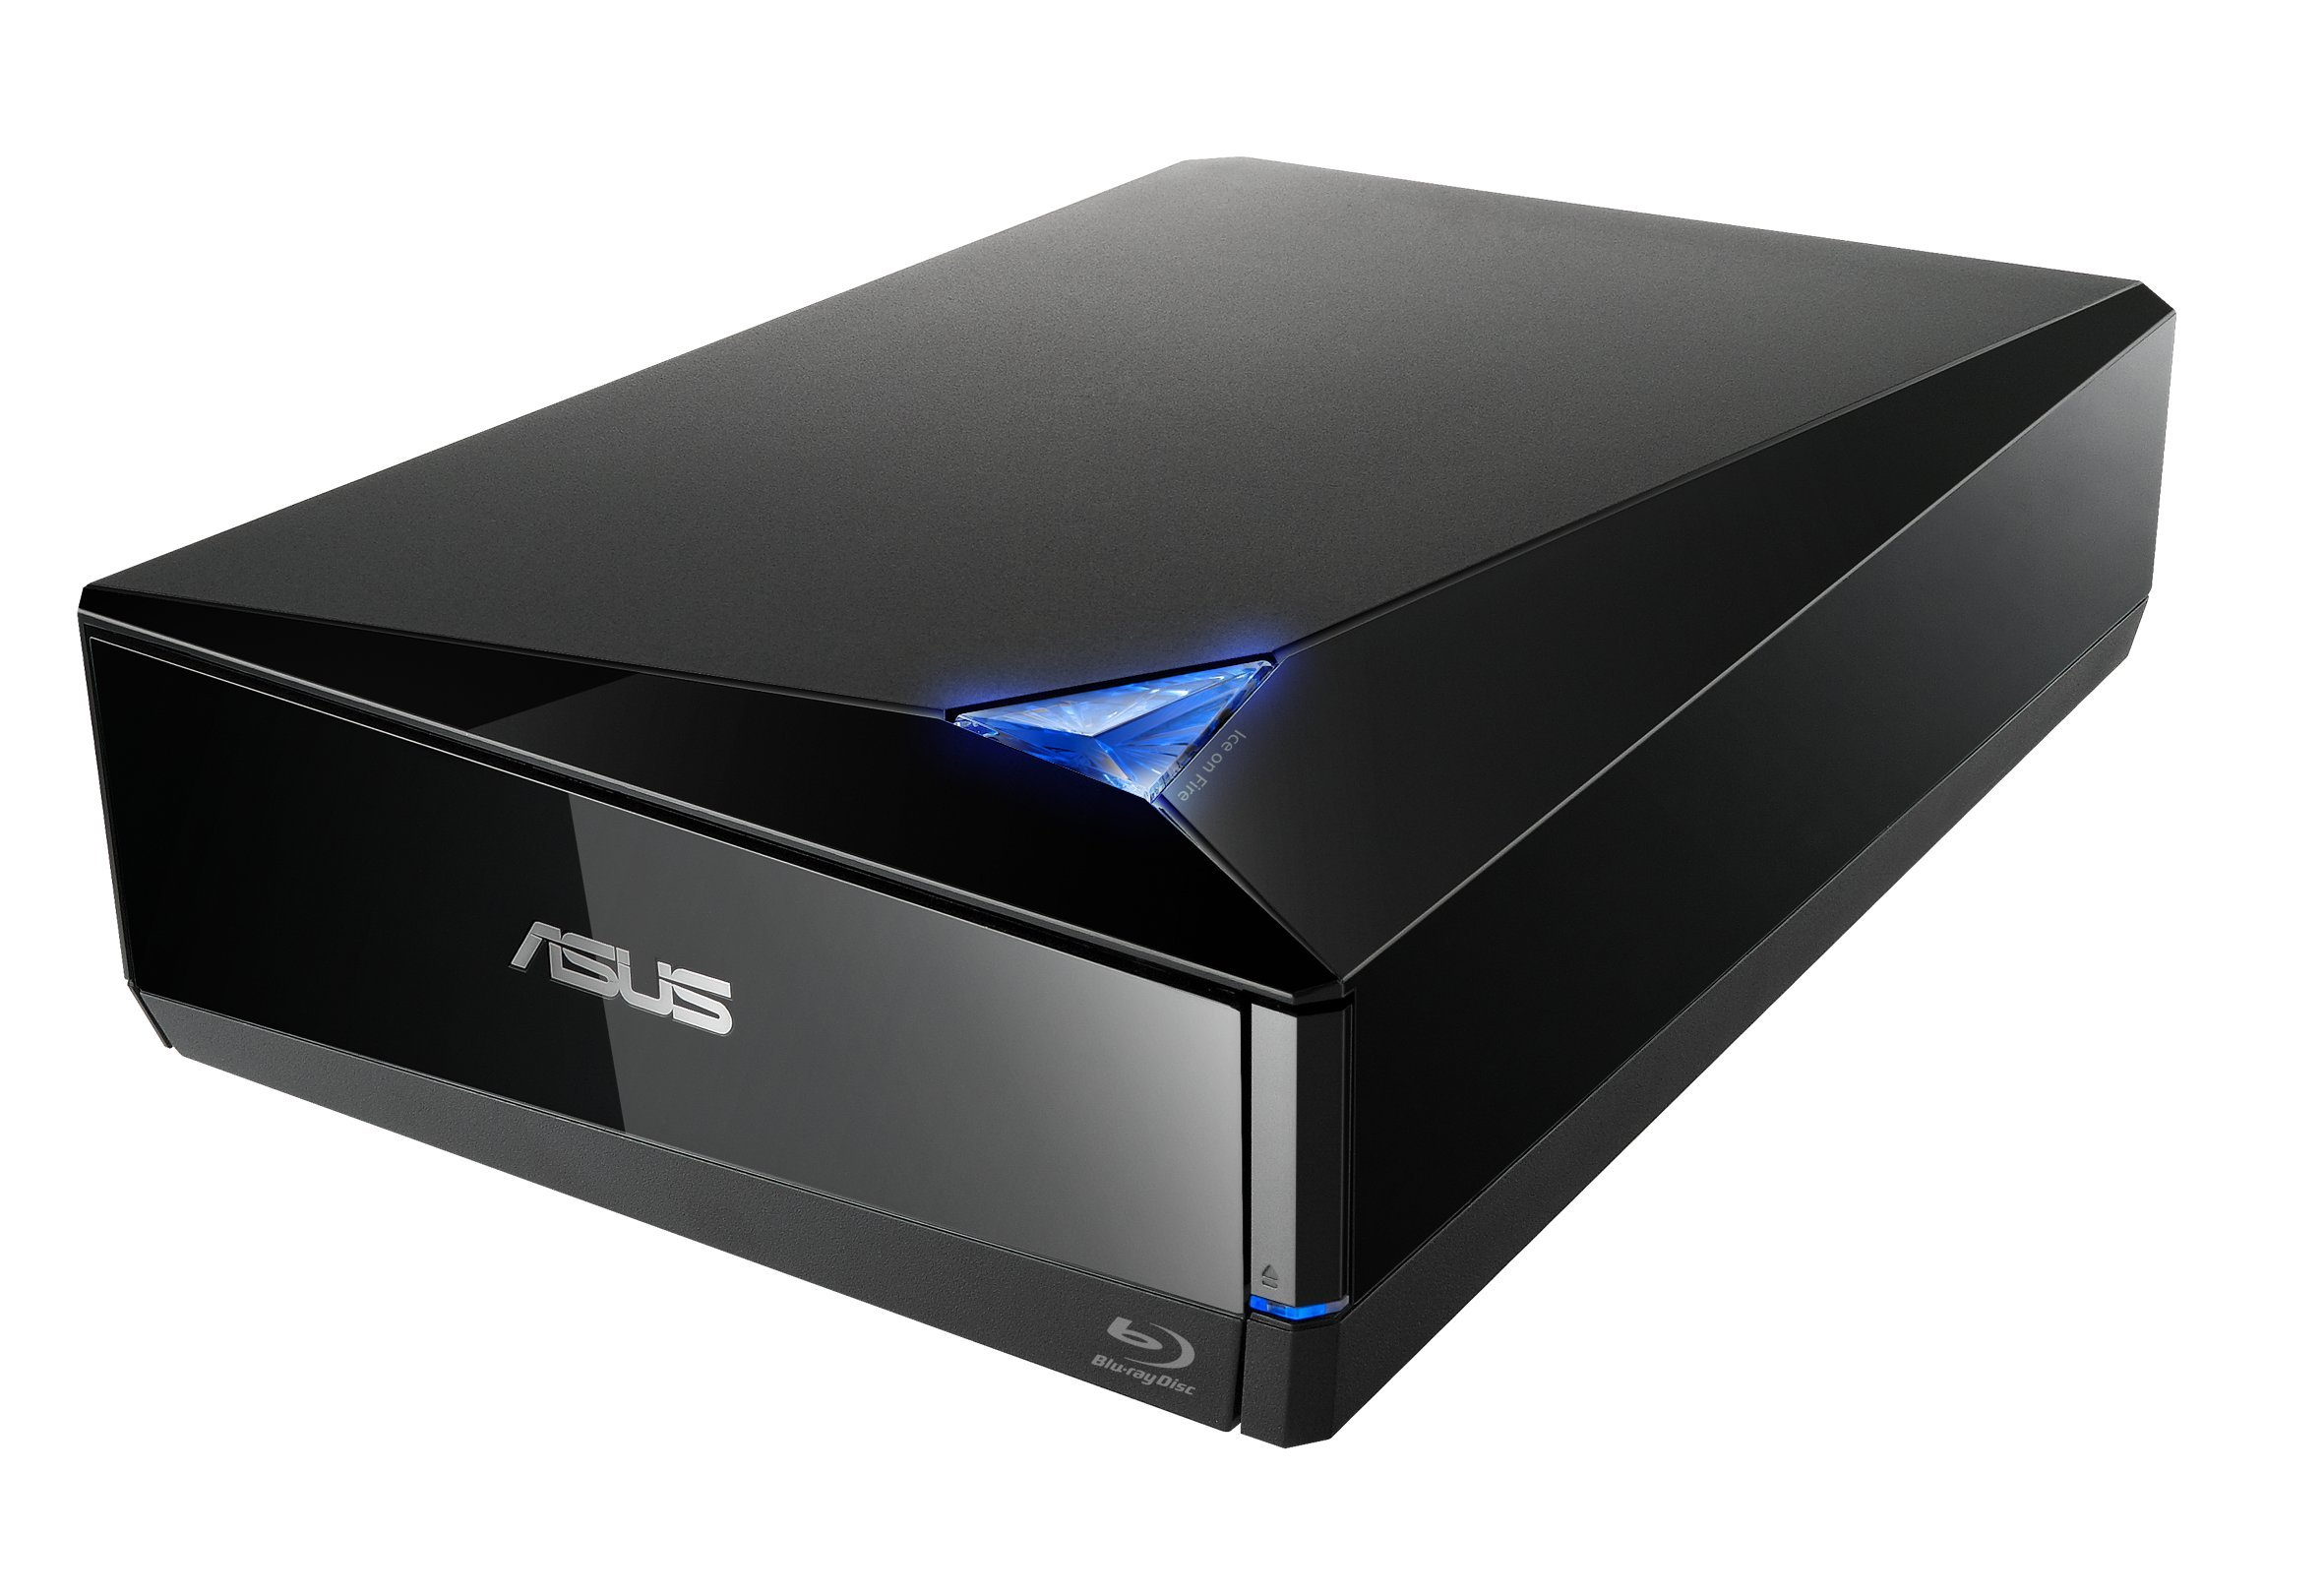 ASUS Computer International Direct ASUS BW-16D1X-U Powerful Blu-ray Drive with 16x writing speed and USB 3.0 for both Mac/PC Optical Drive BW-16D1X-U by Asus